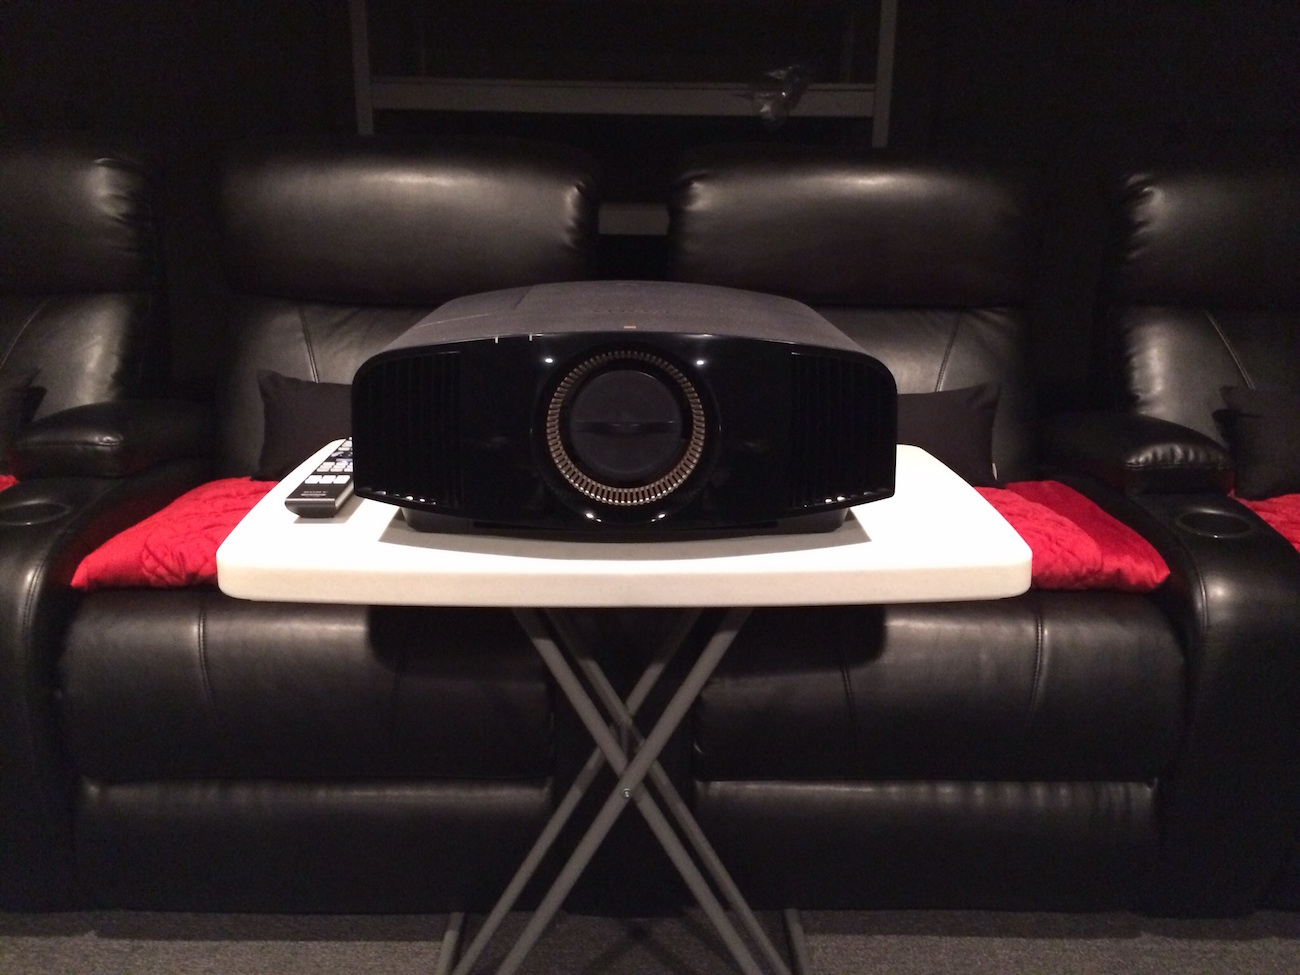 Sony 4k 3d Sxrd Home Theater Gaming Projector Review 187 The